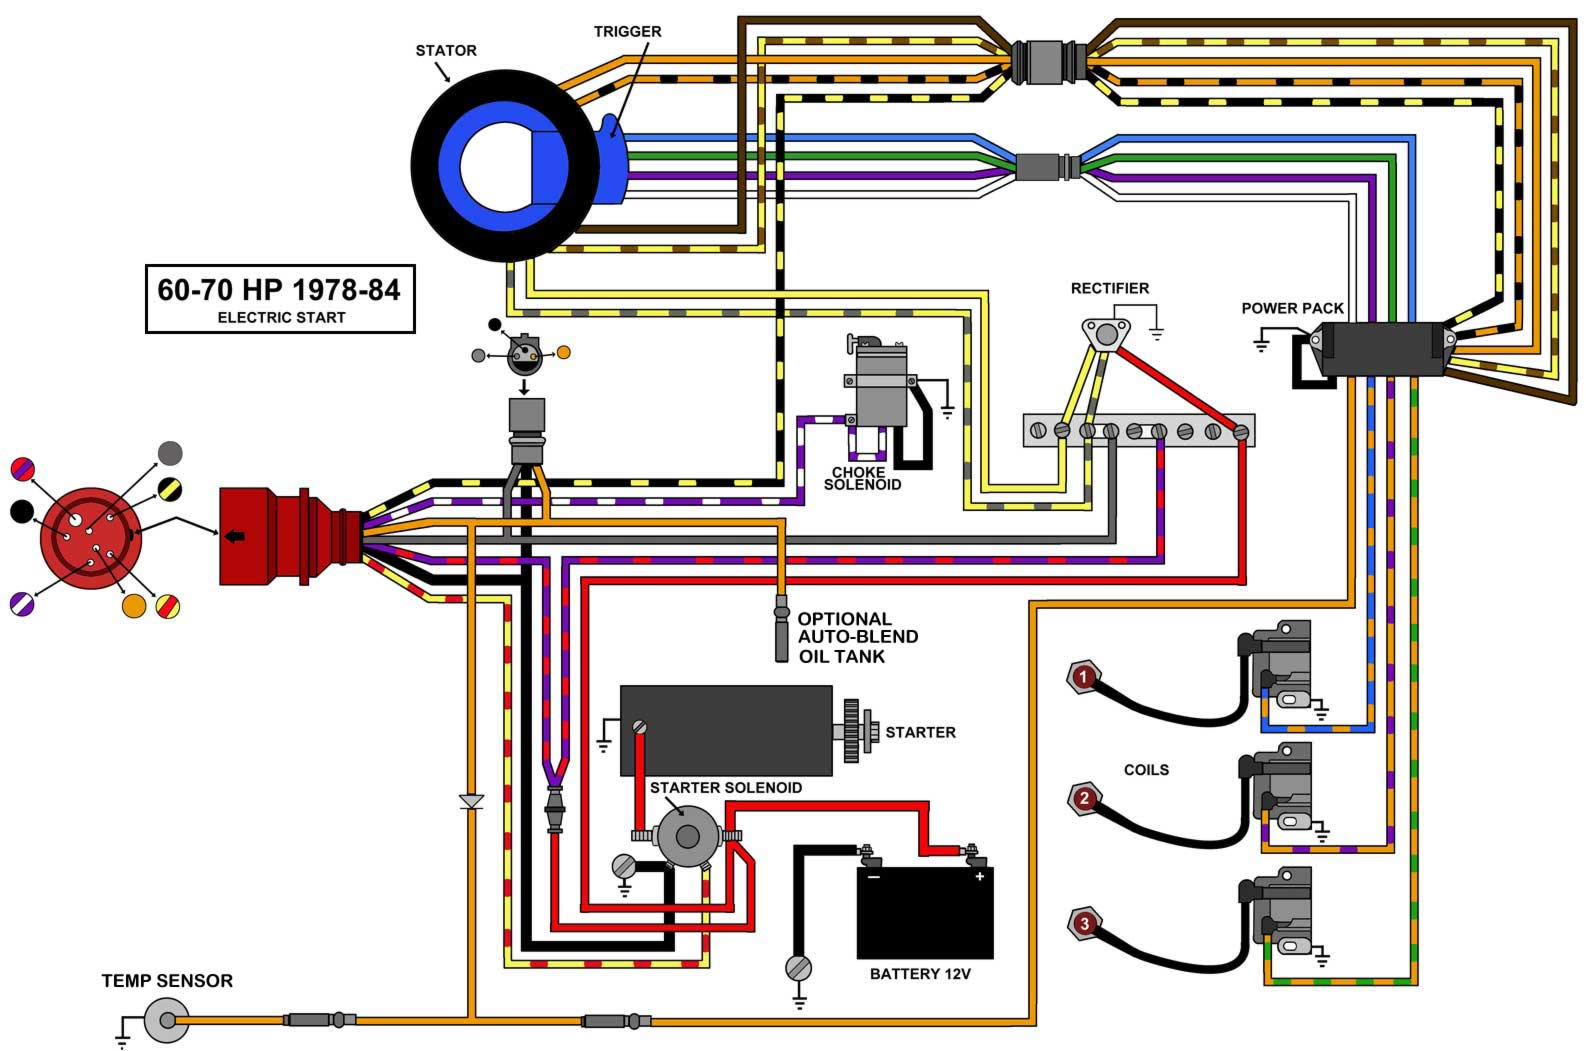 78 84_3 CYL_EL wiring tach from johnson controls page 1 iboats boating forums omc wiring harness diagram at bakdesigns.co